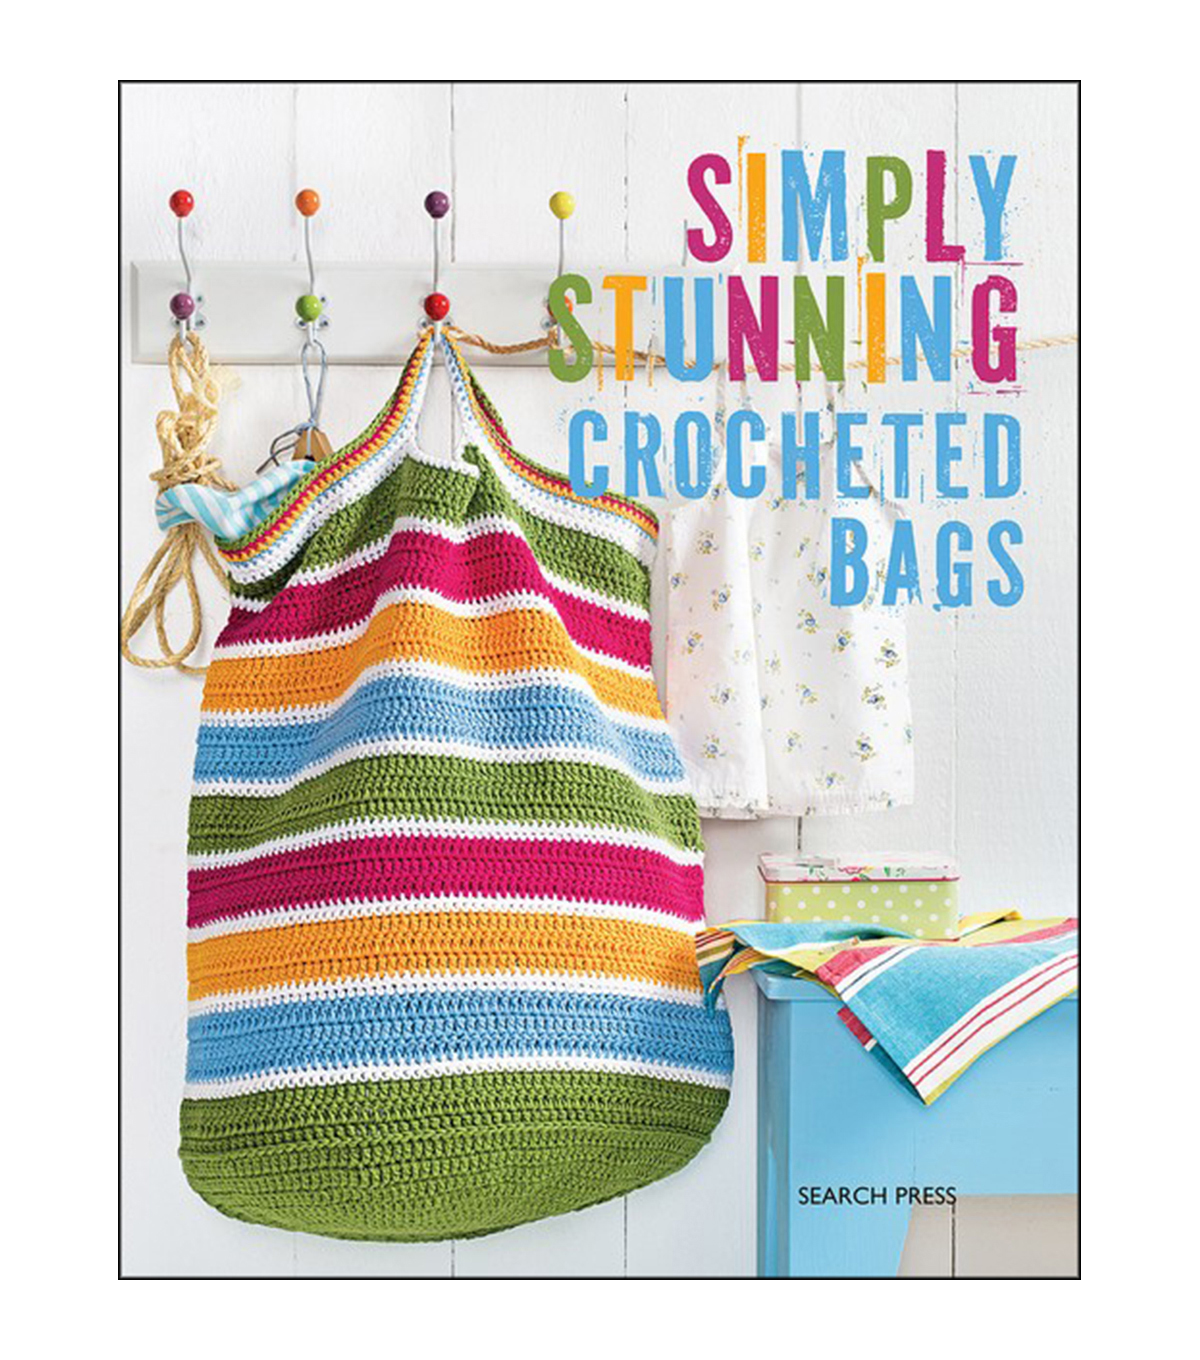 Simply Stunning Crocheted Bags Crochet Book